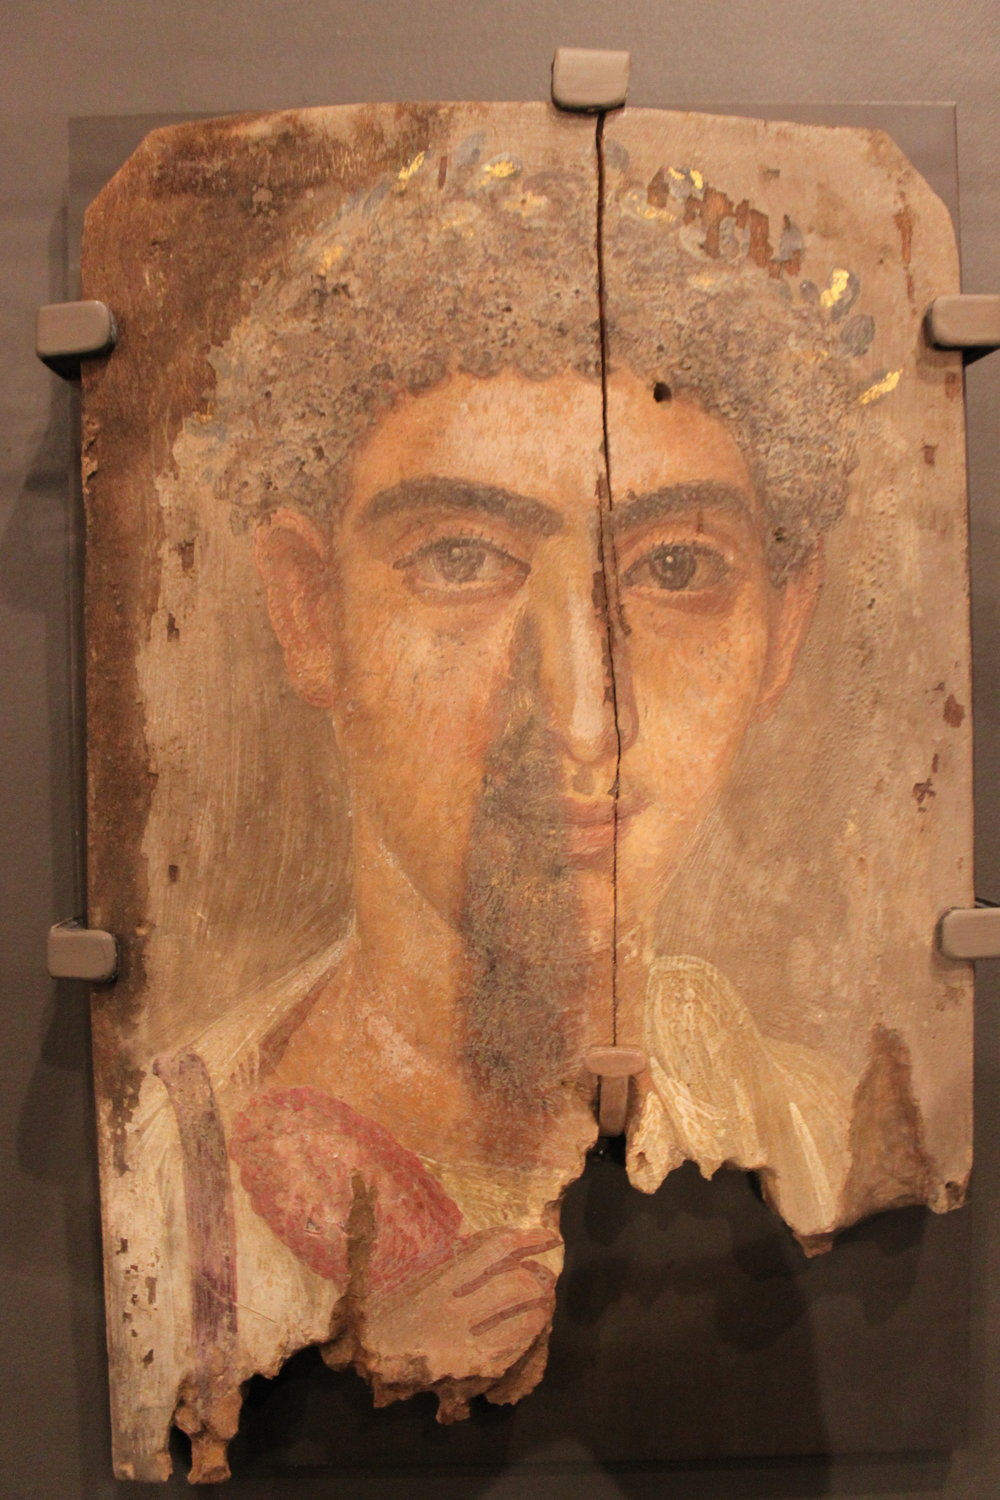 Mummy Portrait of a Man with a Wreath - Roman period (30 BCE  - 295 CE)